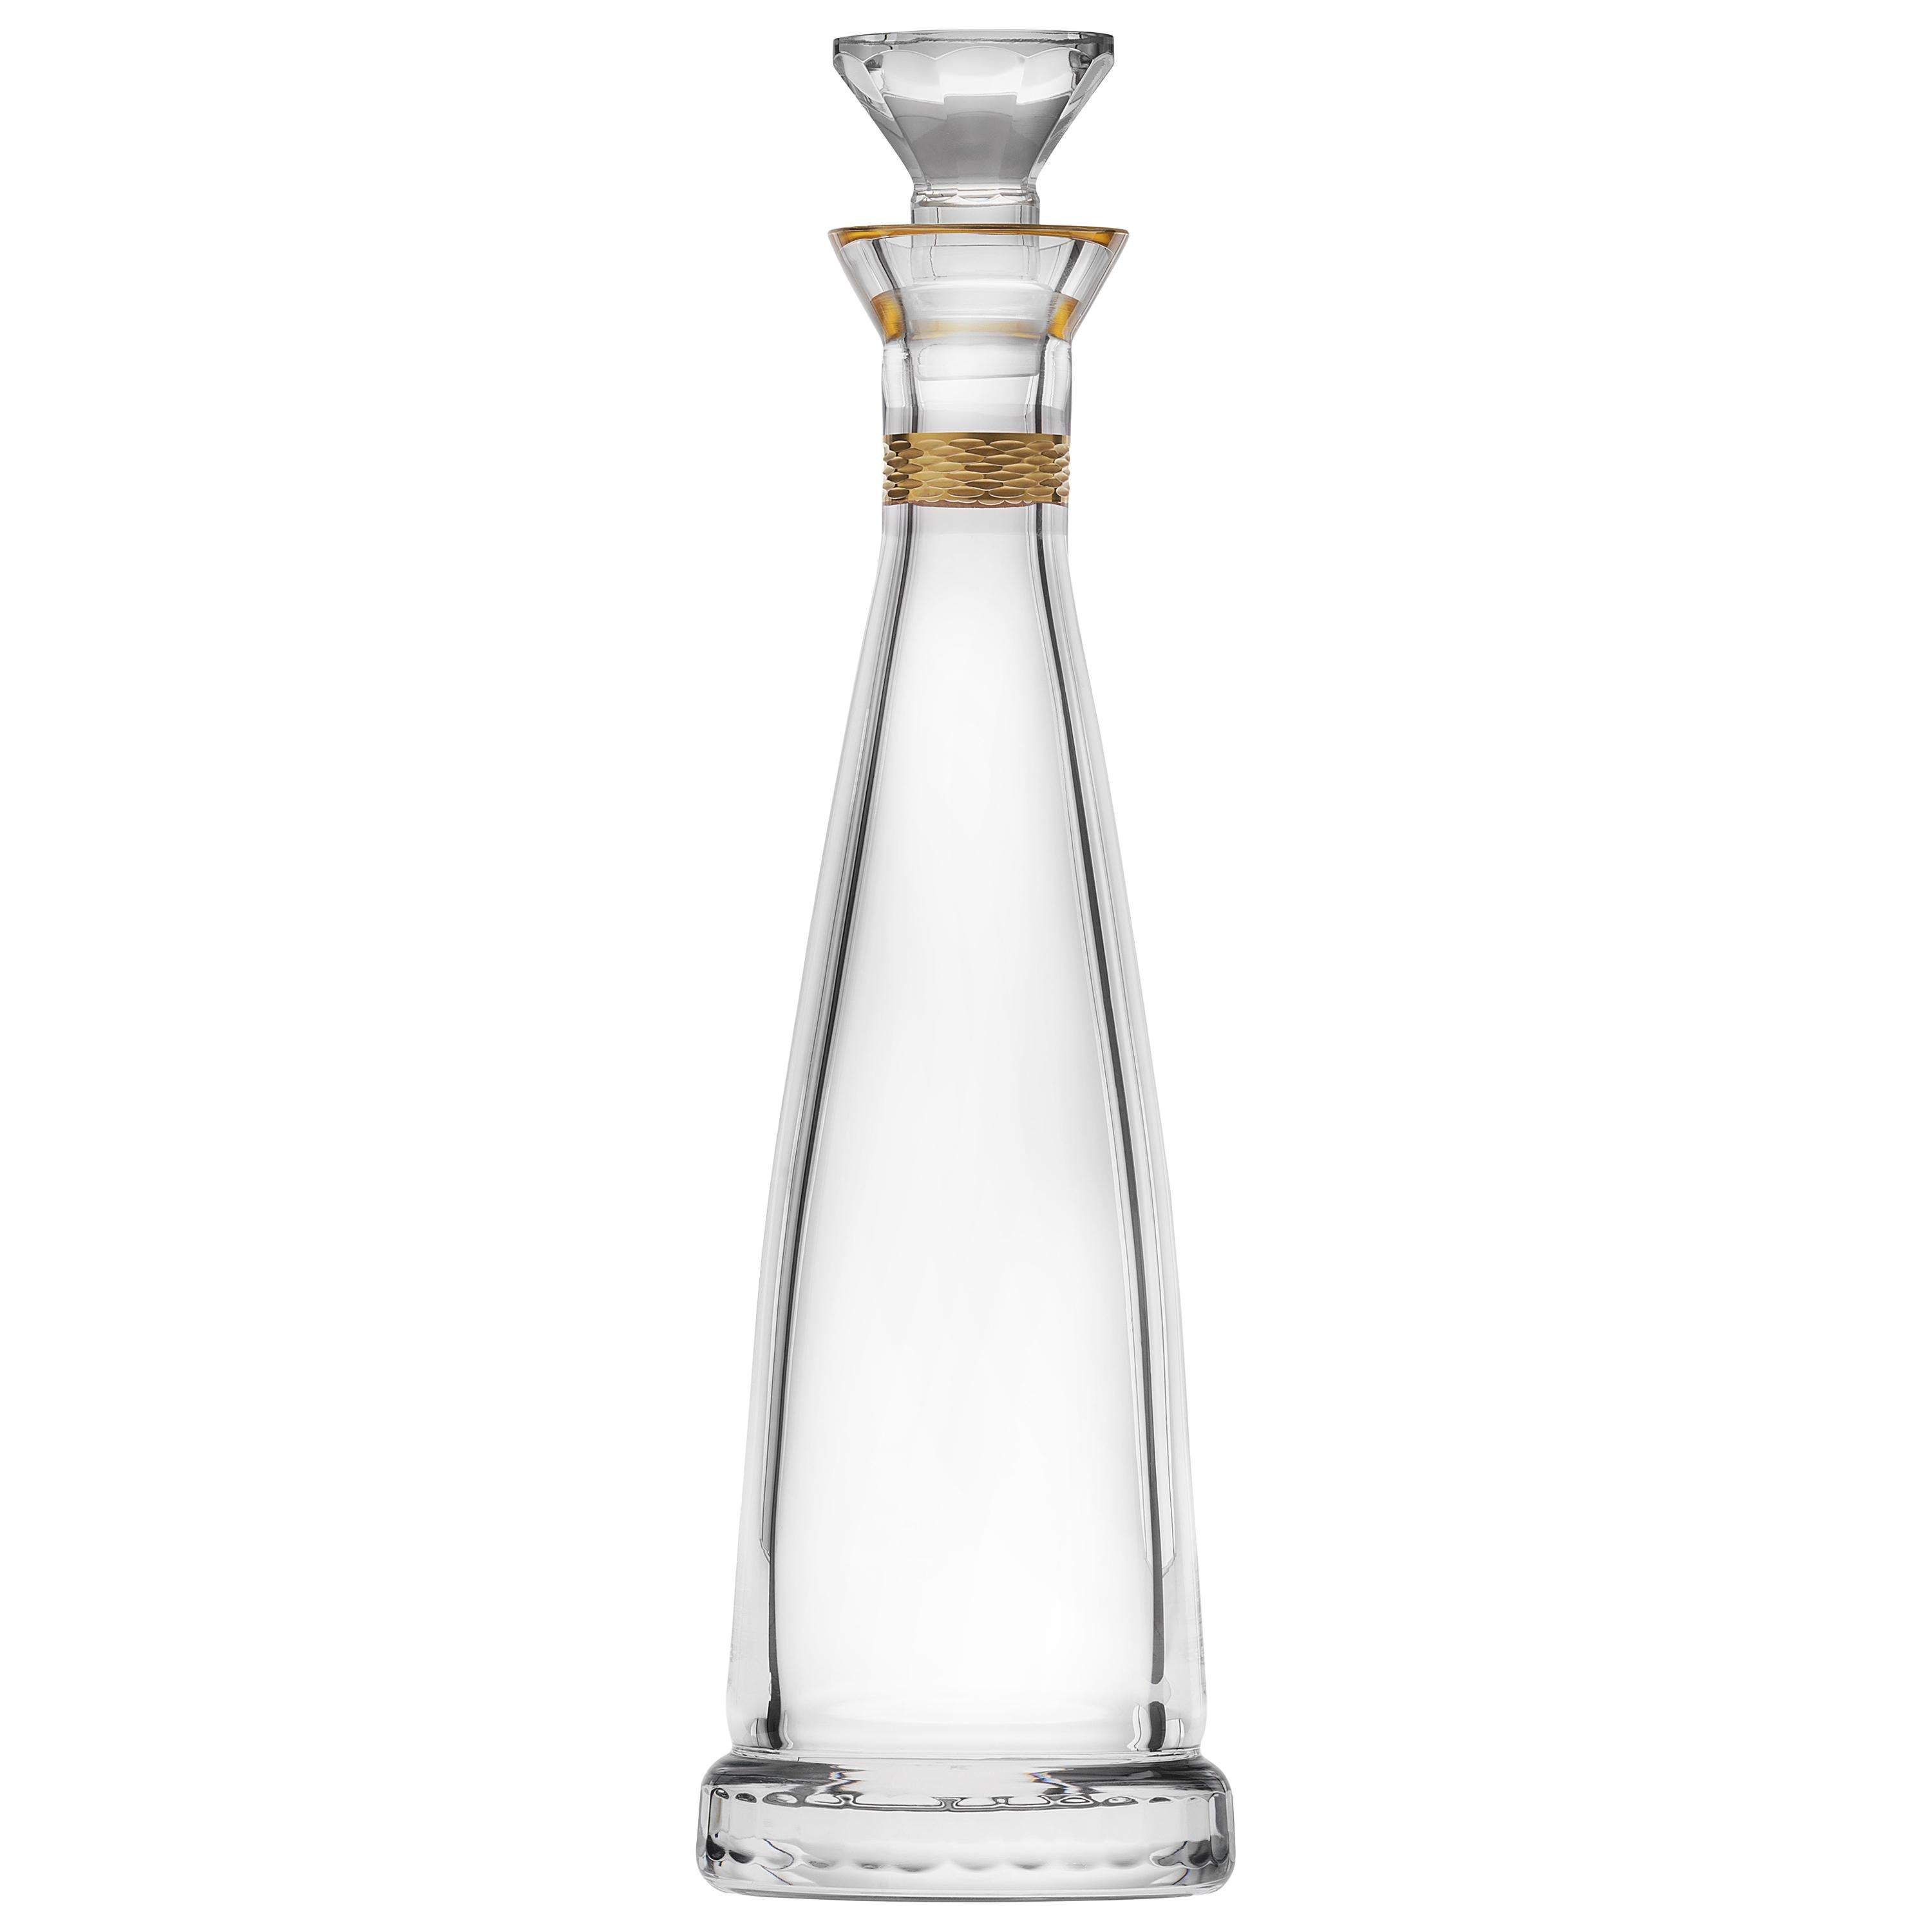 Casanova Wine Decanter Lead-Free Crystal Clear with Gold Decor, 1 qt.